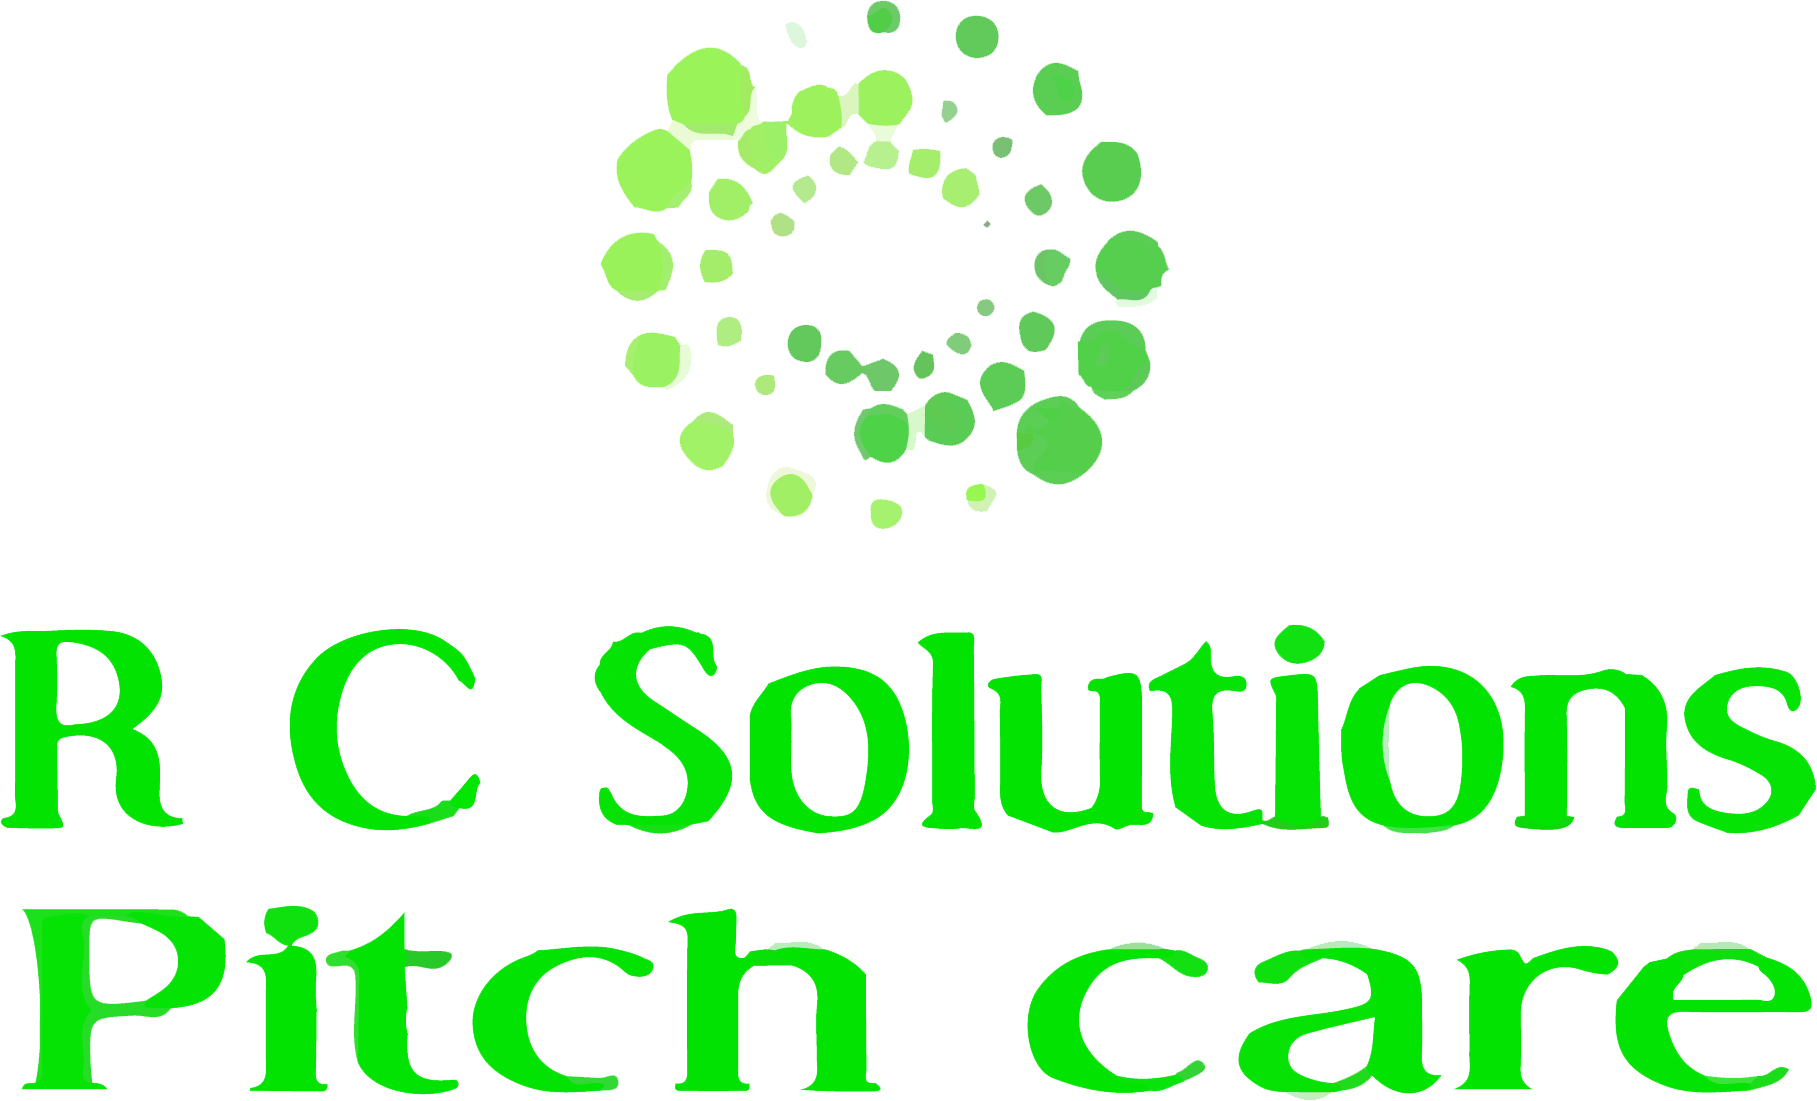 RC Solutions Pitch Care